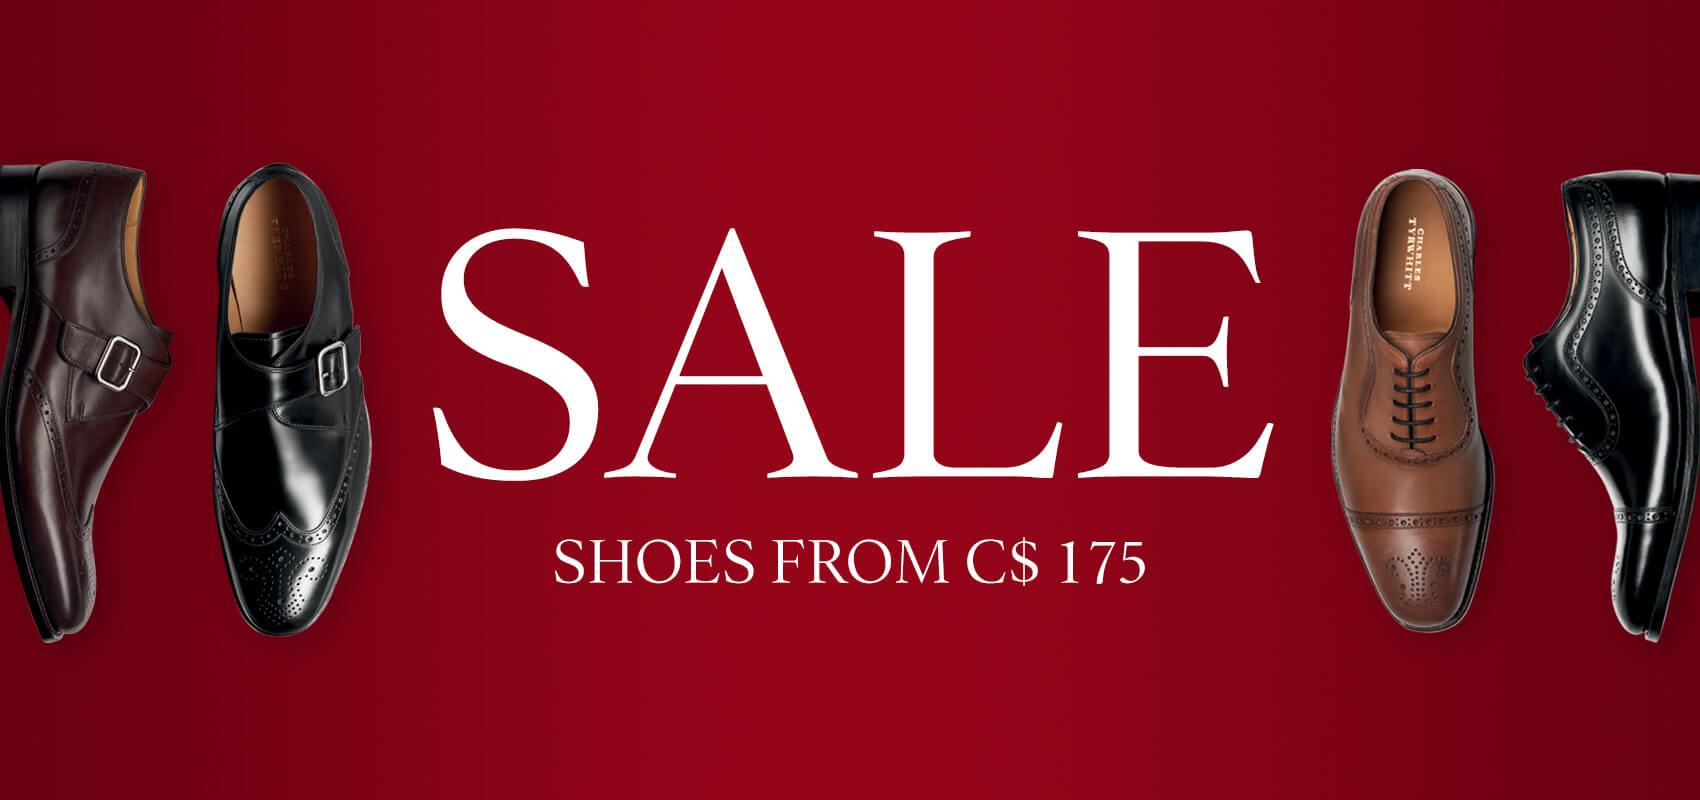 Sale shoes from $175